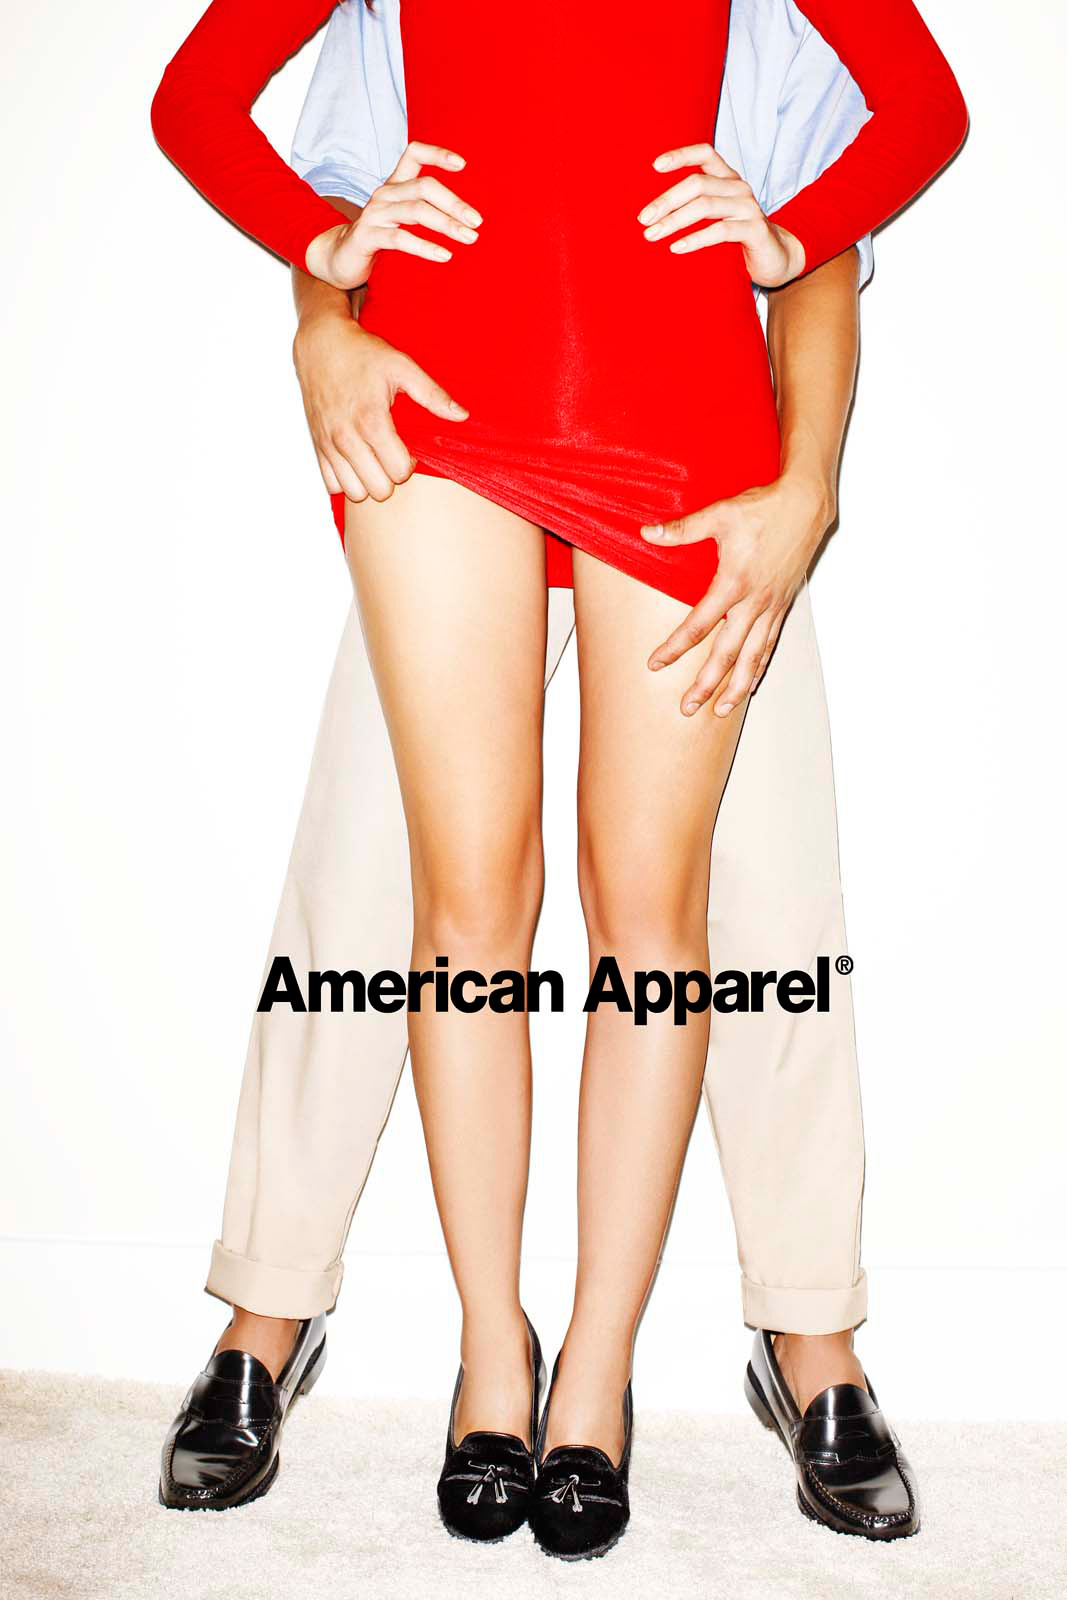 Paula Schneider Appointed Ceo Of American Apparel Elle